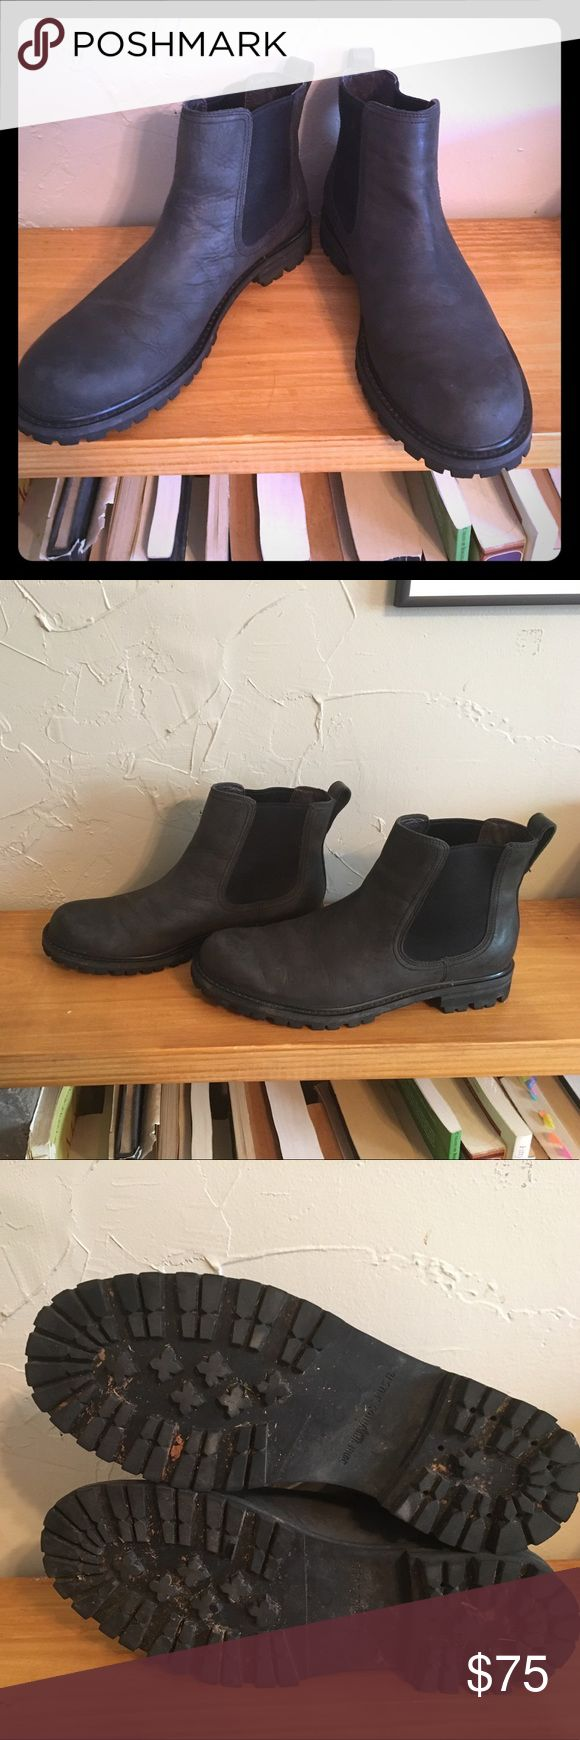 John Varvatos Black Leather Chelsea Boots, 8 Mens Stylish and GUC leather Chelsea boots. Hoeing is in perfect condition. Brand is John Varvatos. Please ask question and make offers! John Varvatos Shoes Boots